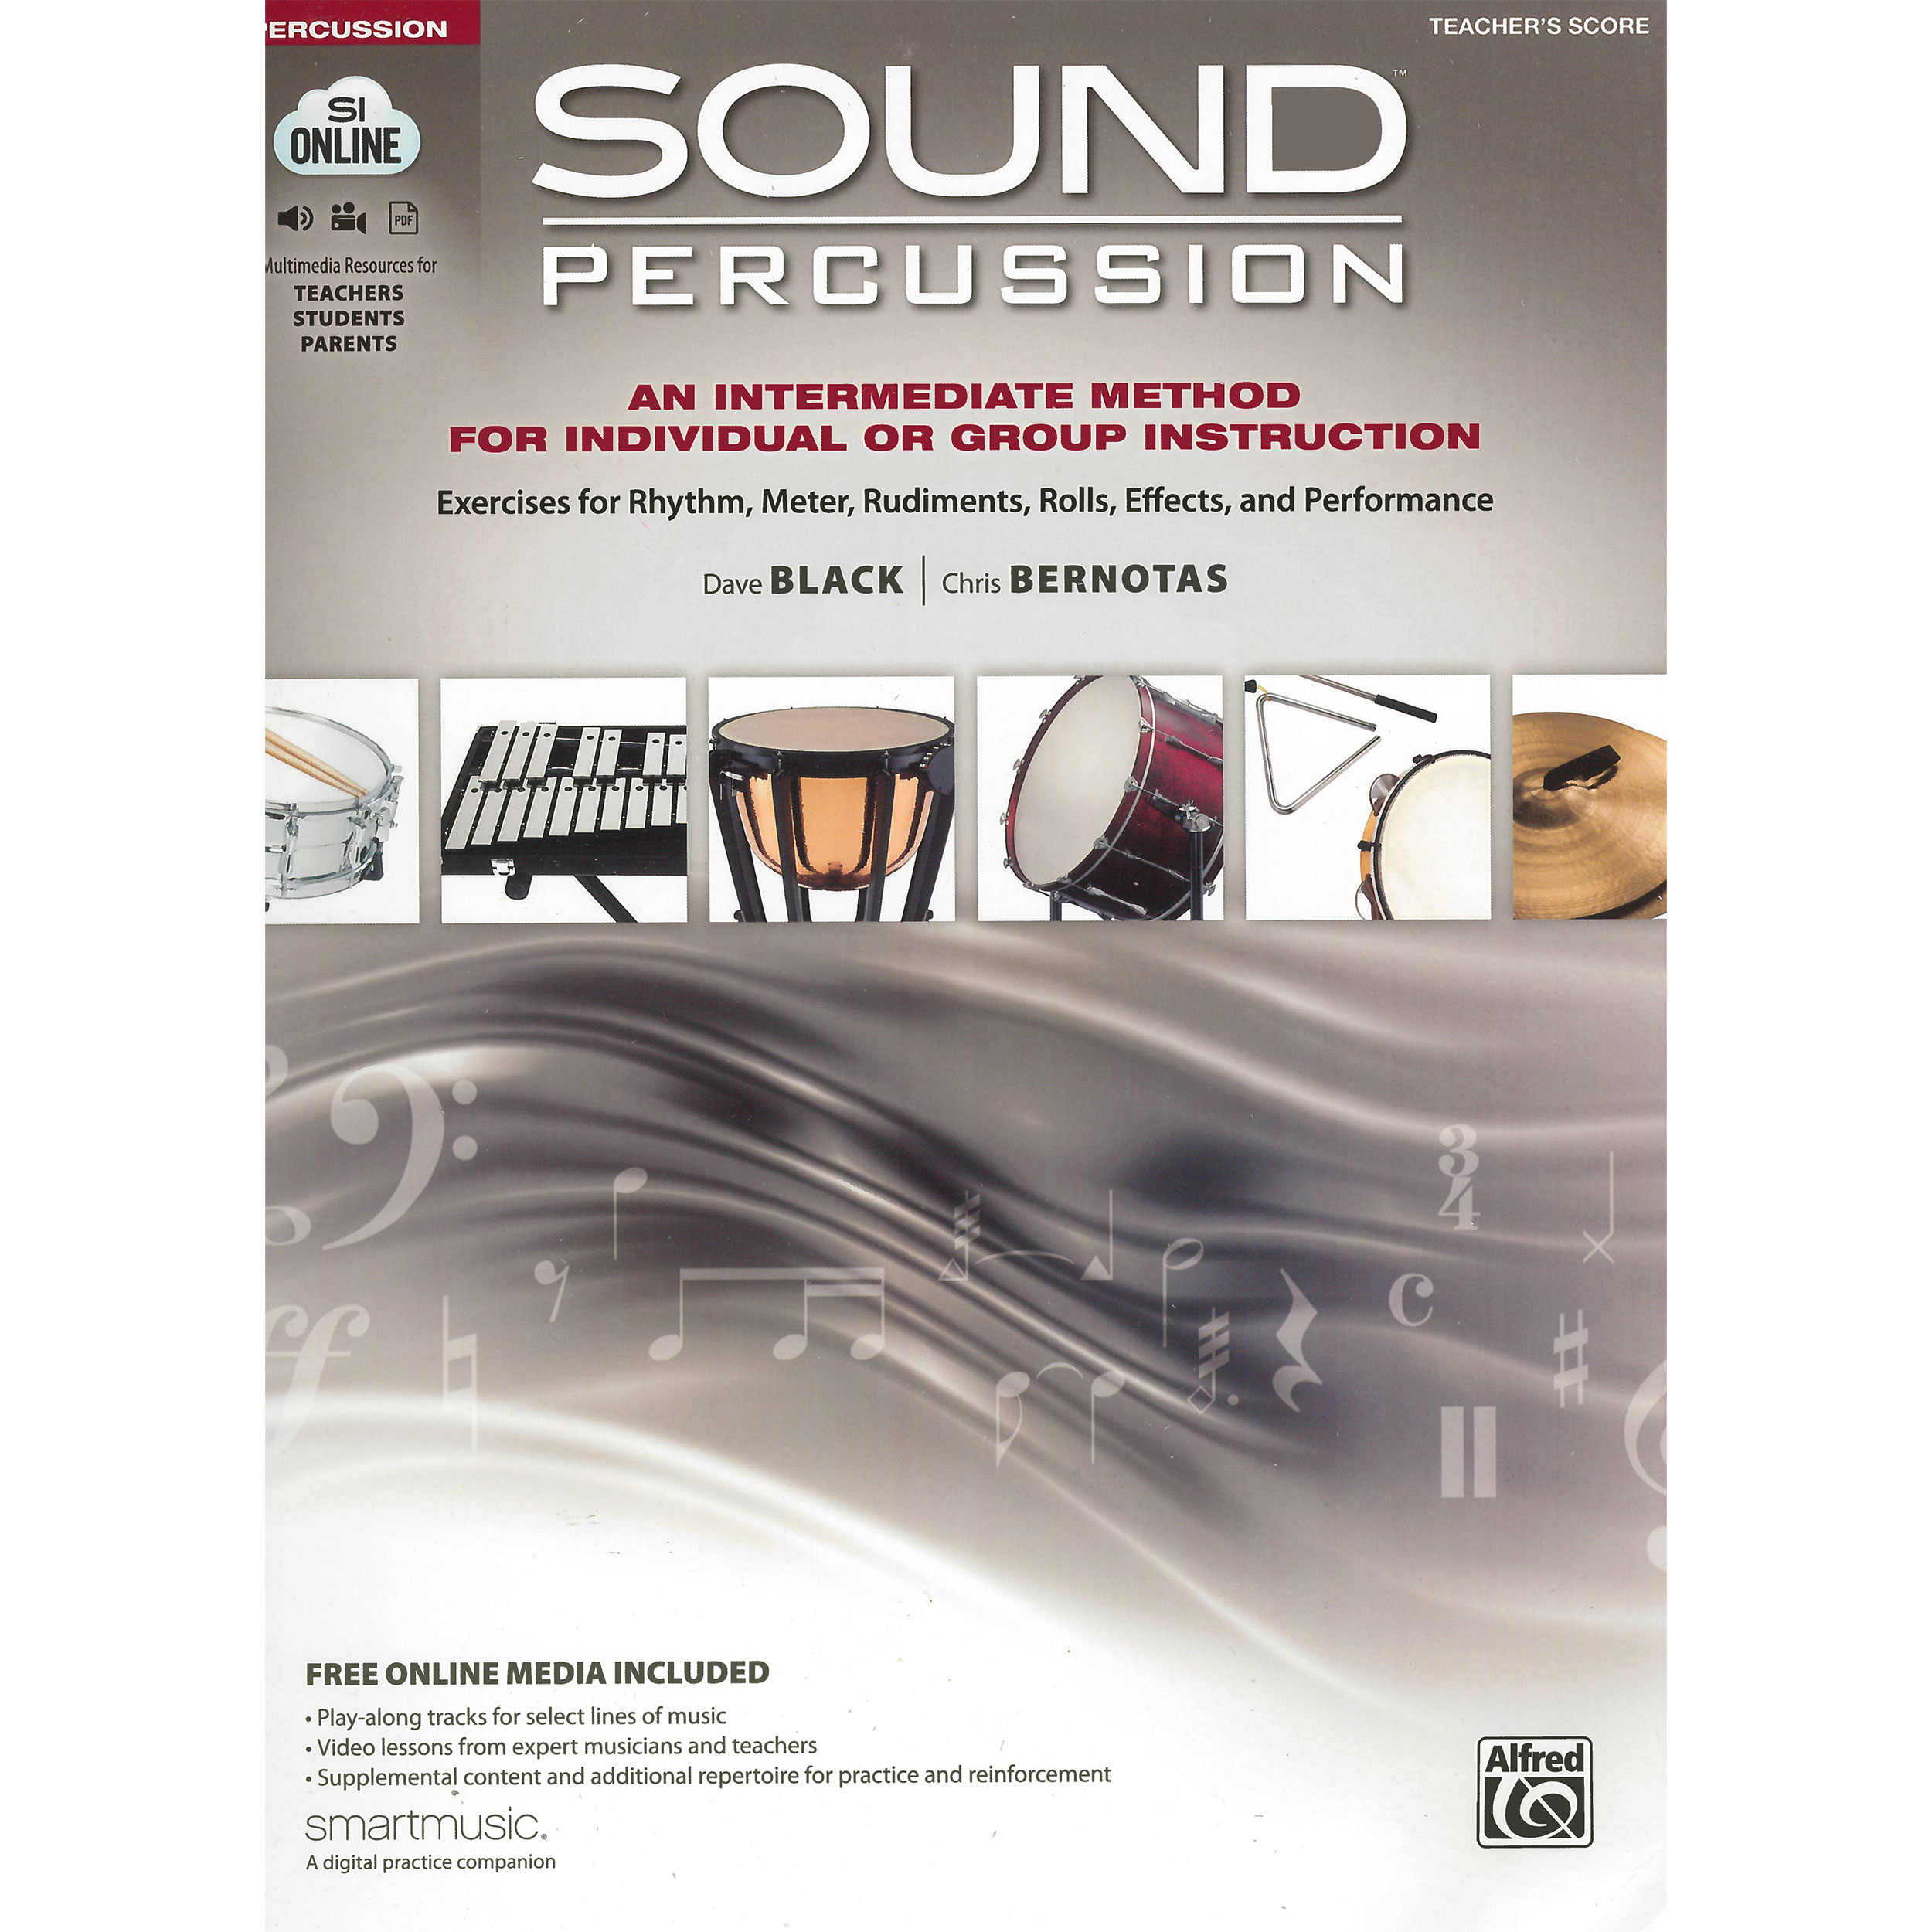 Sound Percussion by Dave Black and Chris Bernotas (Teacher Score)